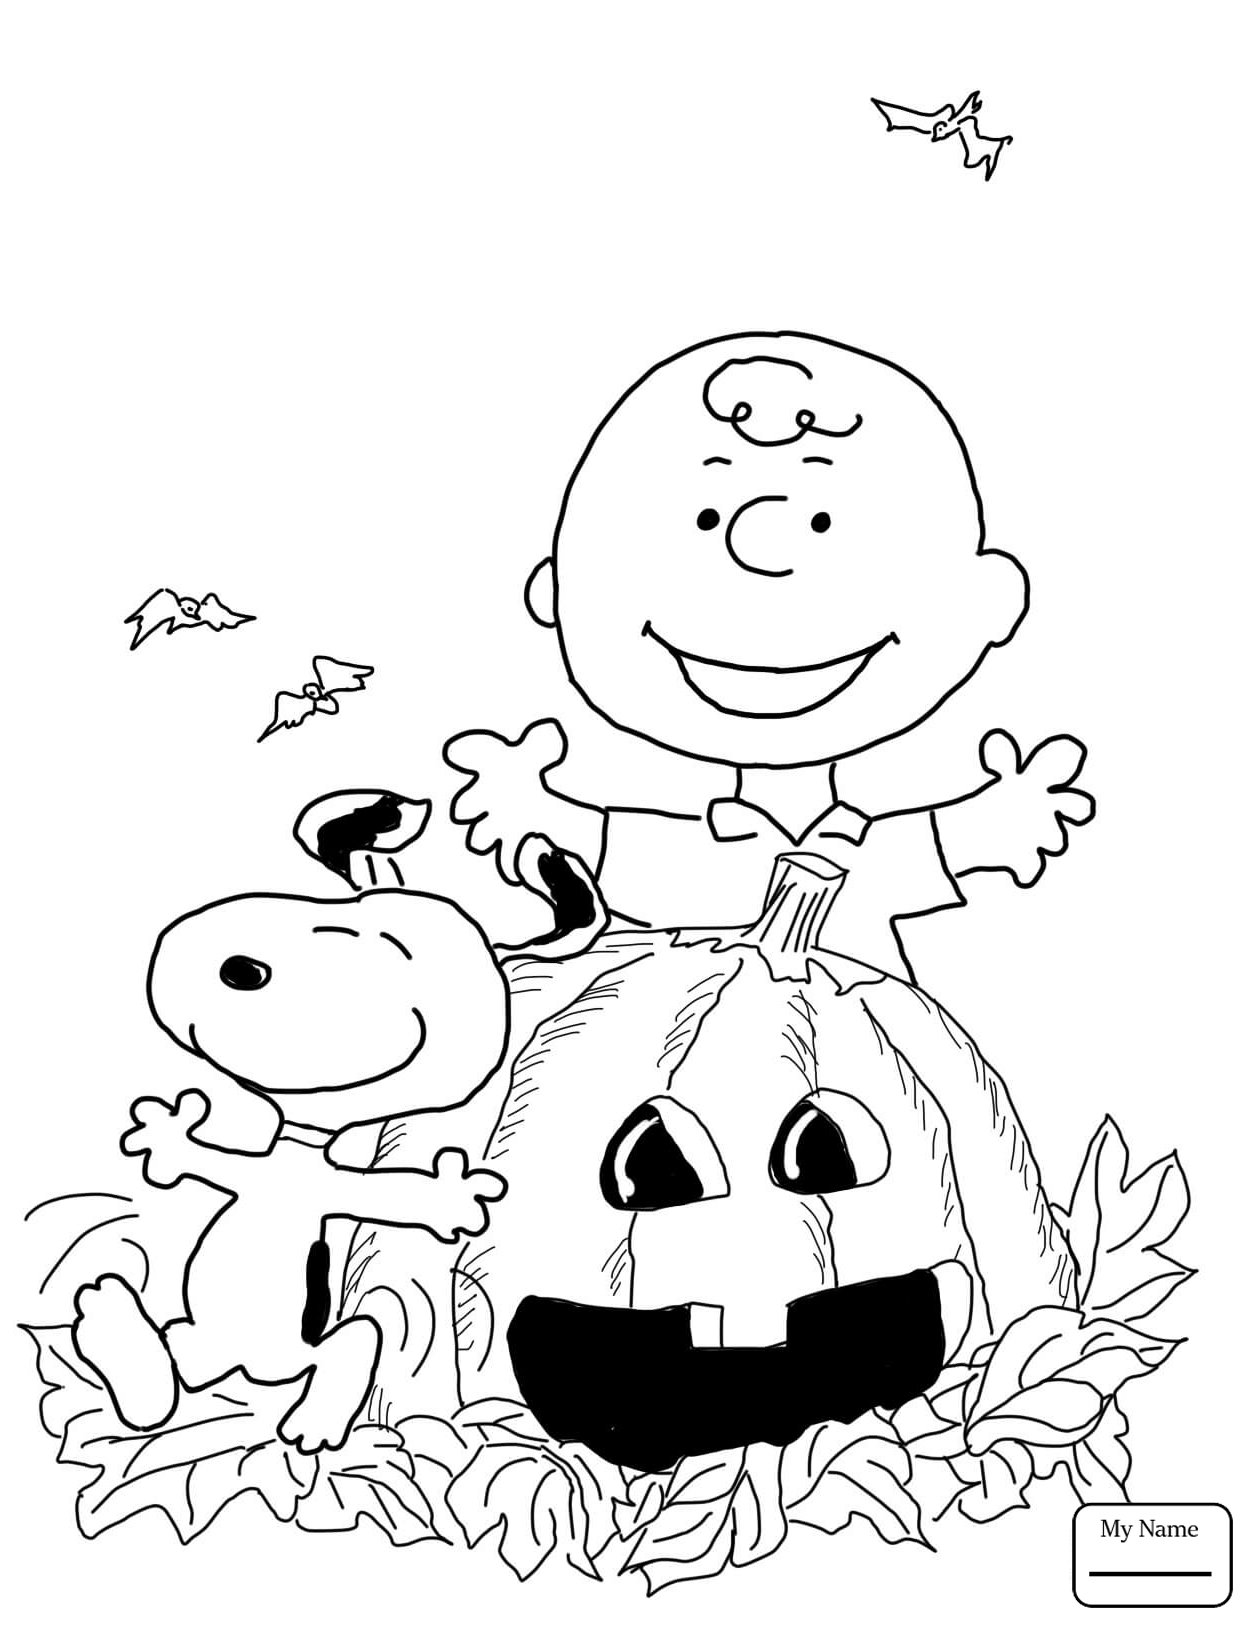 peanuts characters coloring pages peanuts drawing at getdrawings free download coloring characters peanuts pages